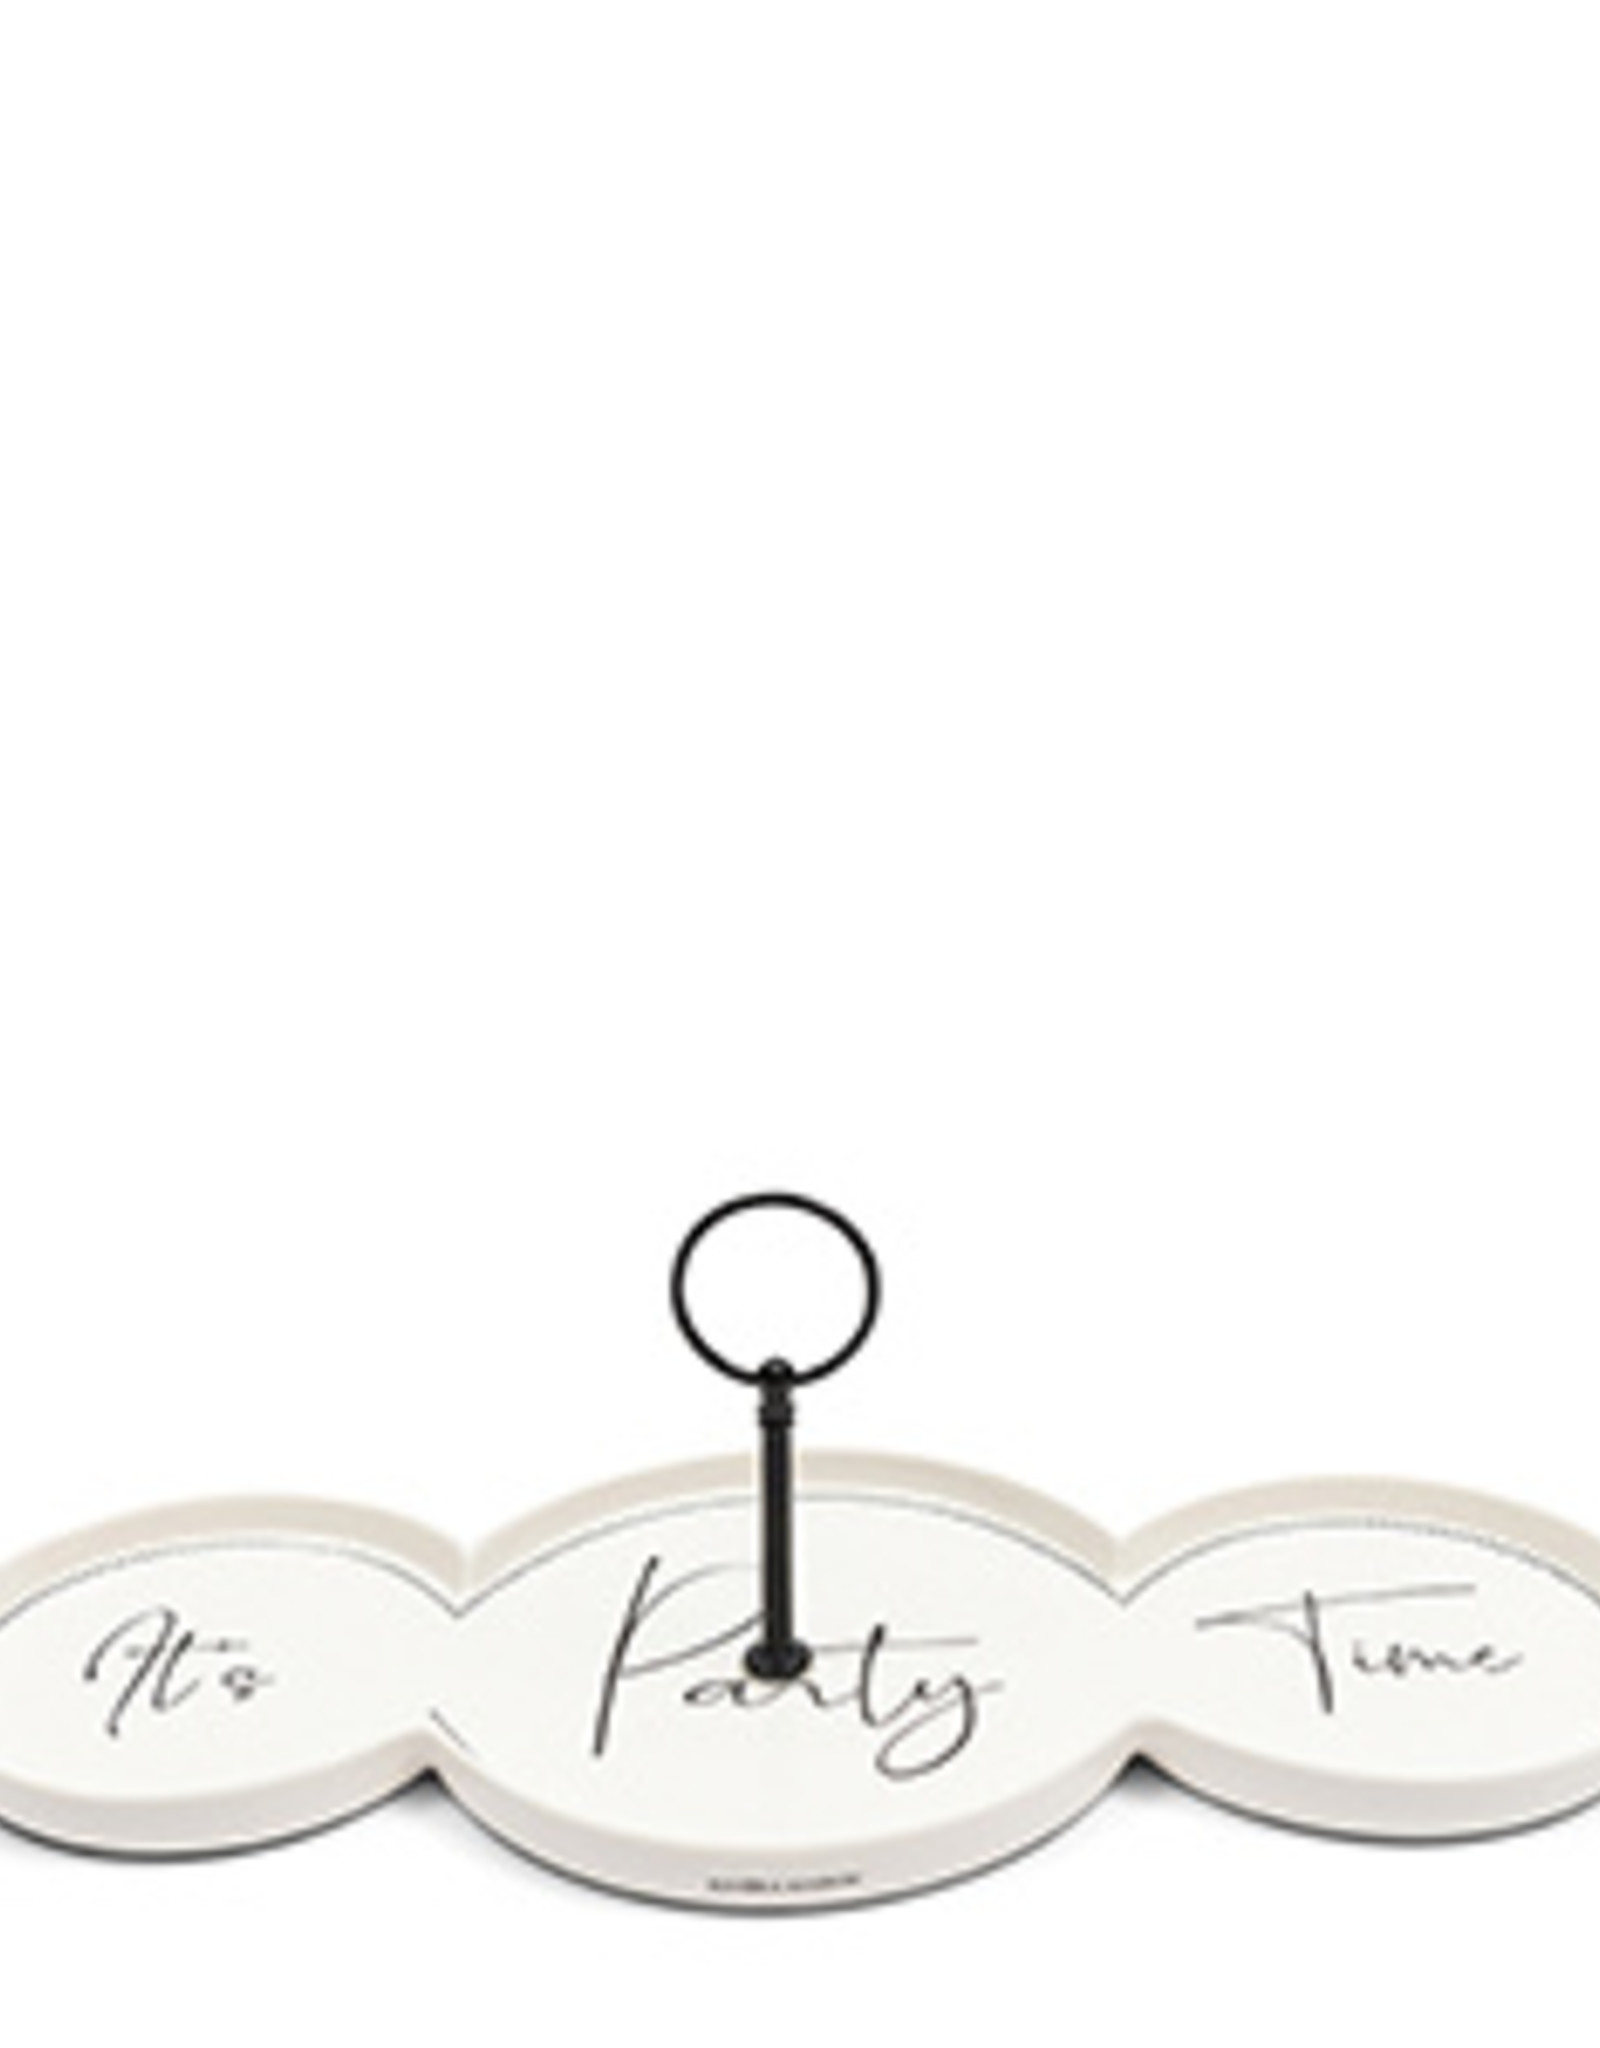 Riviera Maison It's Party Time Serving Plate